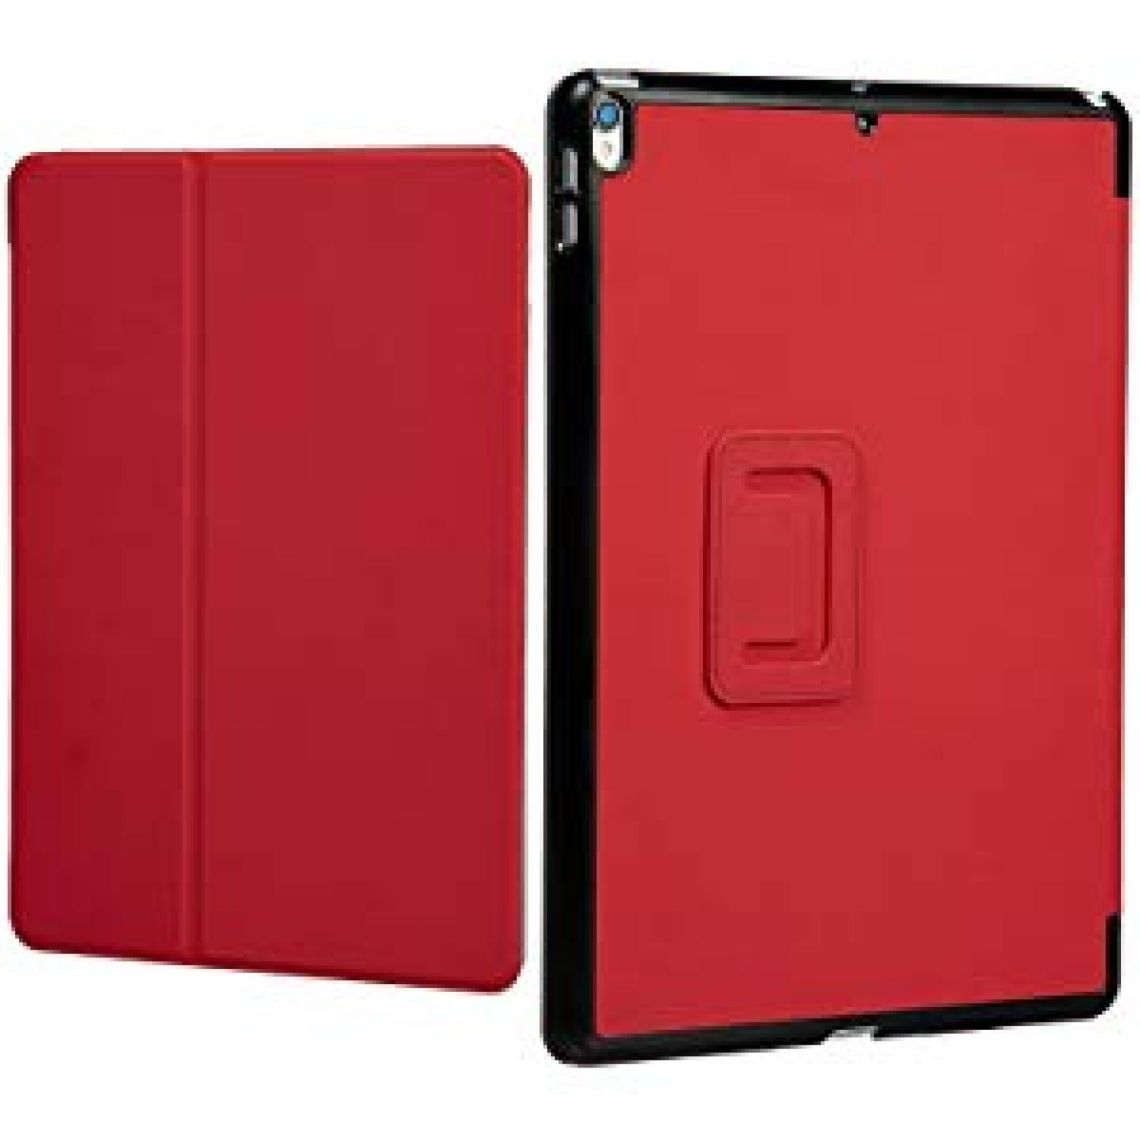 "Amazon.com: AmazonBasics New iPad Pro 2017 Smart Case Auto Wake/Sleep Cover, Red, 10.5"": Computers & Accessories"